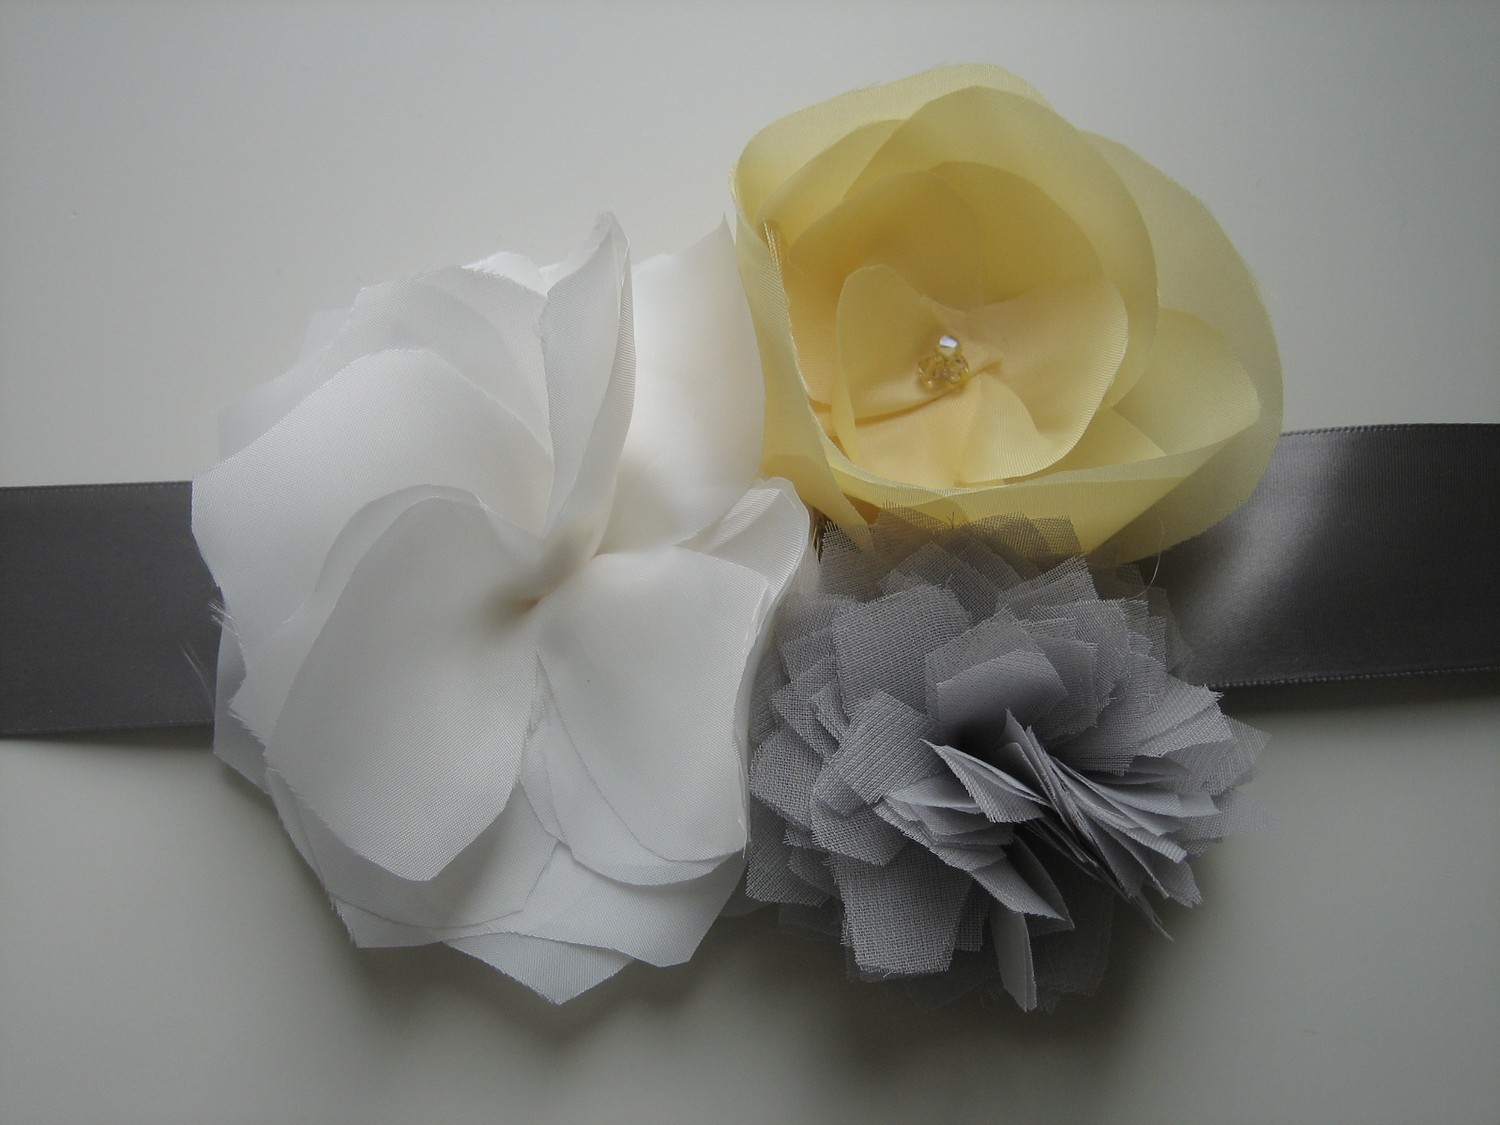 Beauty, Flowers & Decor, Bridesmaids, Bridesmaids Dresses, Wedding Dresses, Fashion, dress, Bridesmaid Bouquets, Flowers, Flower, Girl, Wedding, Bridesmaid, Hair, Bridal, Sash, Belt, Fabric, Fascinator, Handmade, Flower Wedding Dresses